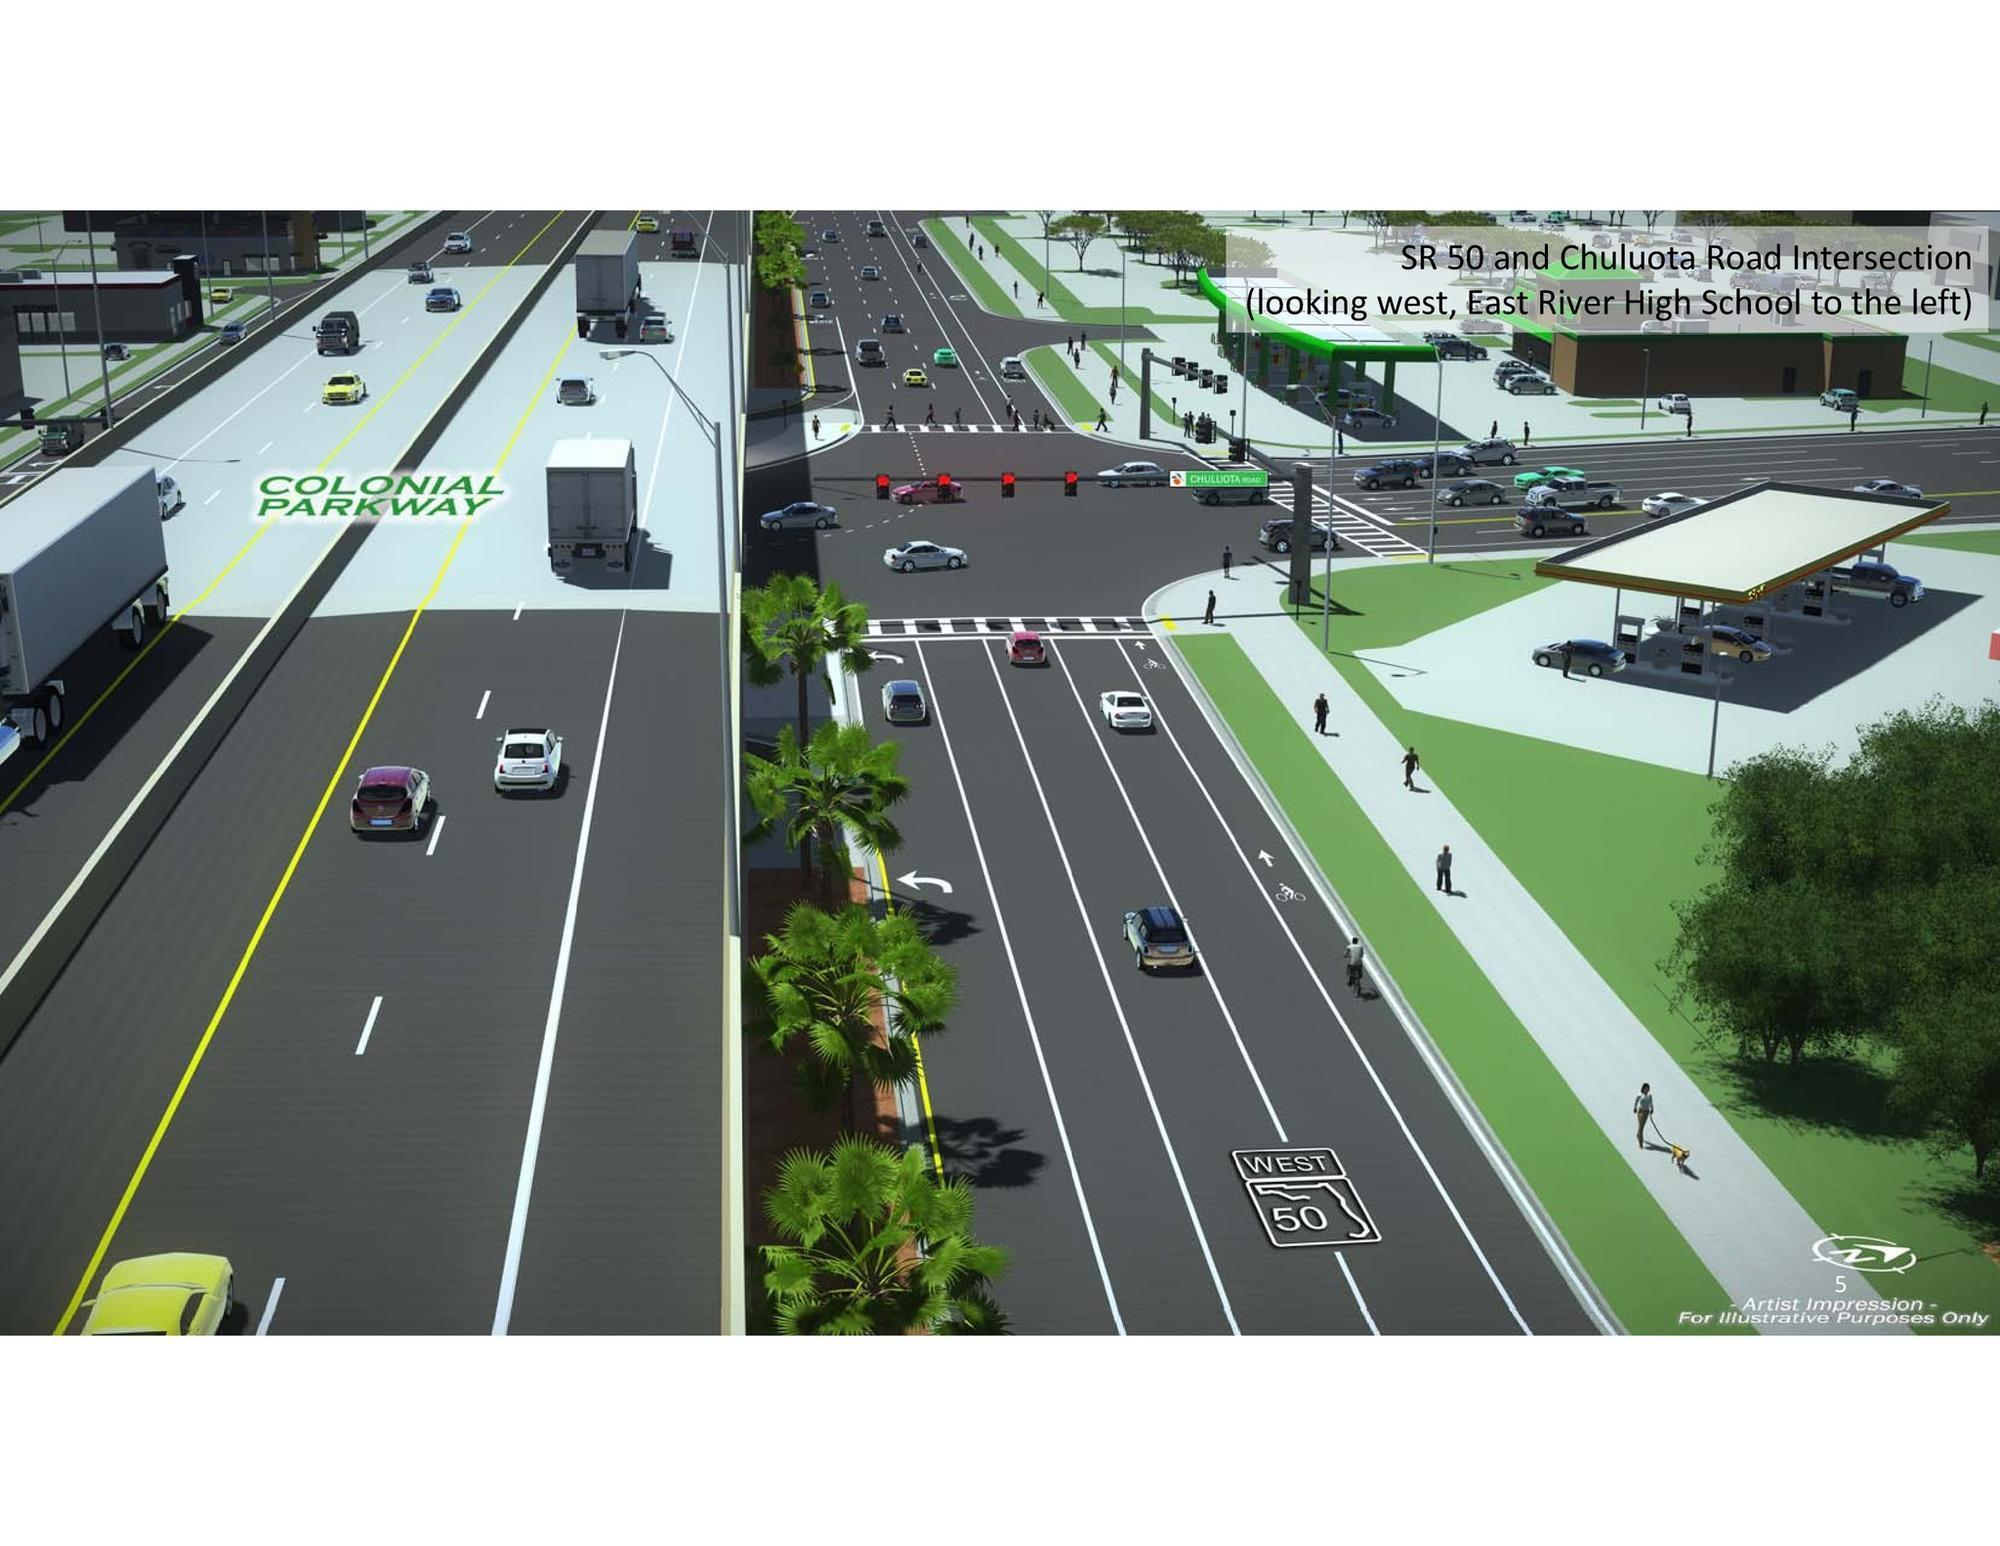 Expressway proposal for Bithlo and east Orange gets 8-mile